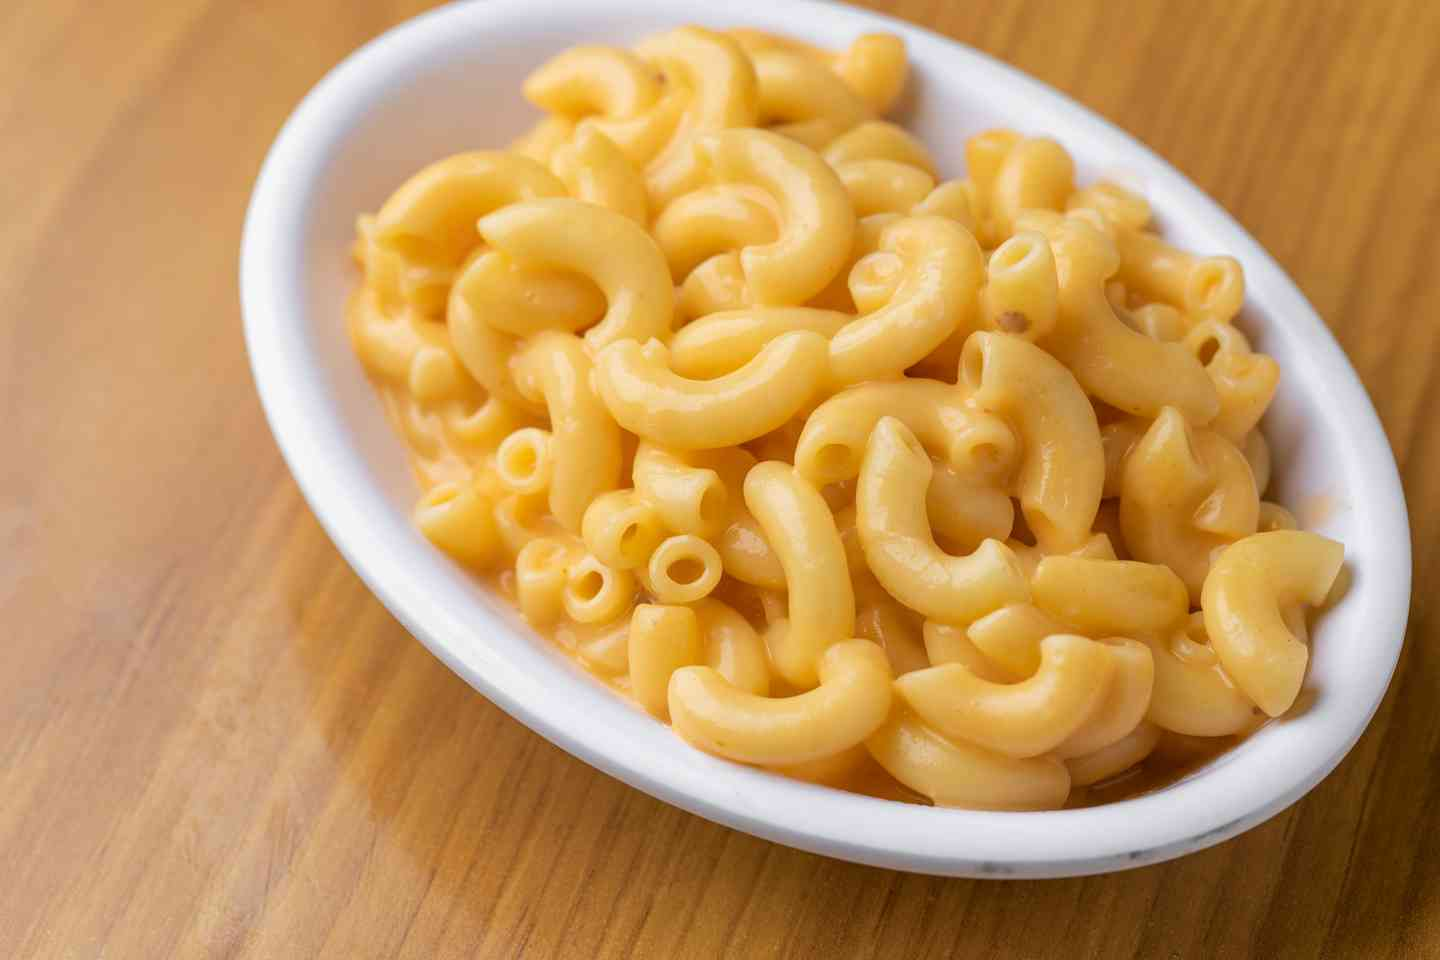 Smokey 5 Cheese Mac and Cheese